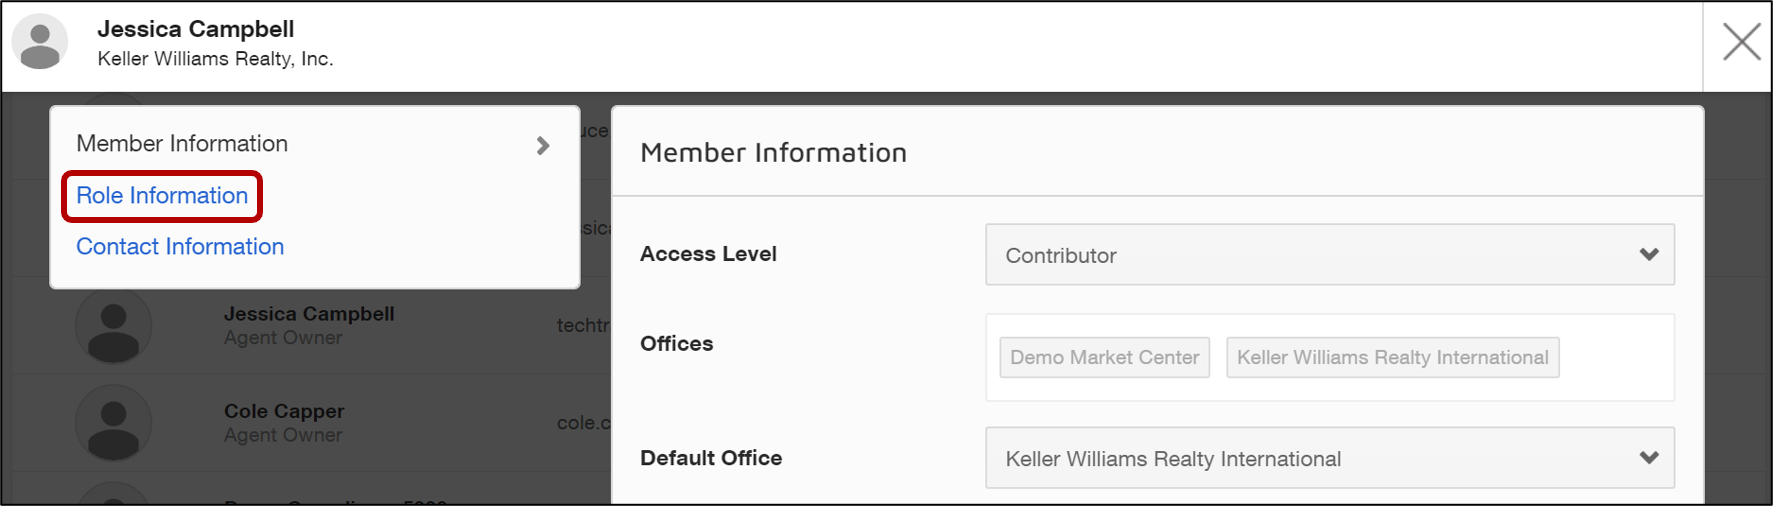 docusign_admin_role_info.png